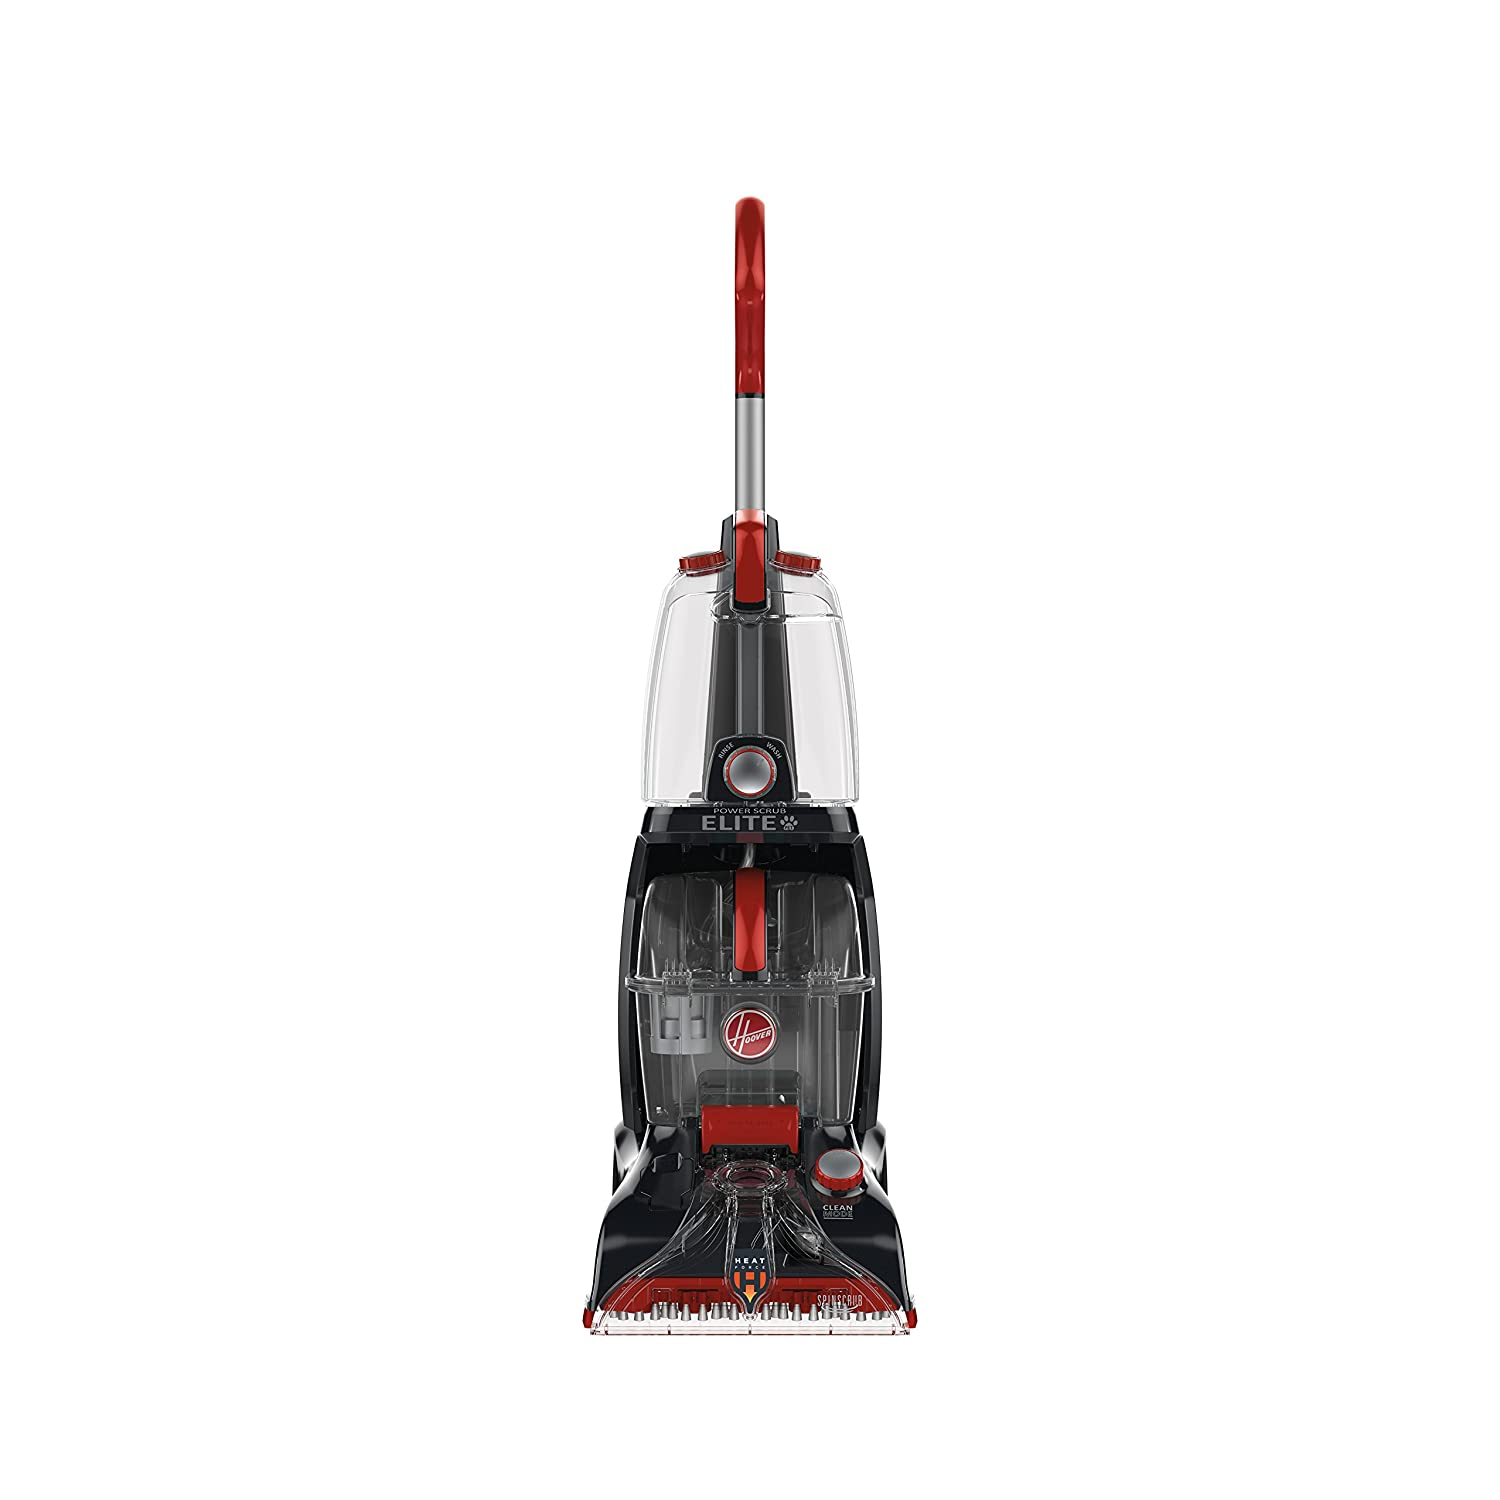 Hoover Power Scrub Deluxe Carpet Washer, FH50150 + Hoover Clean Plus 2X 64-Ounce Carpet Cleaner and Deodorizer, Red